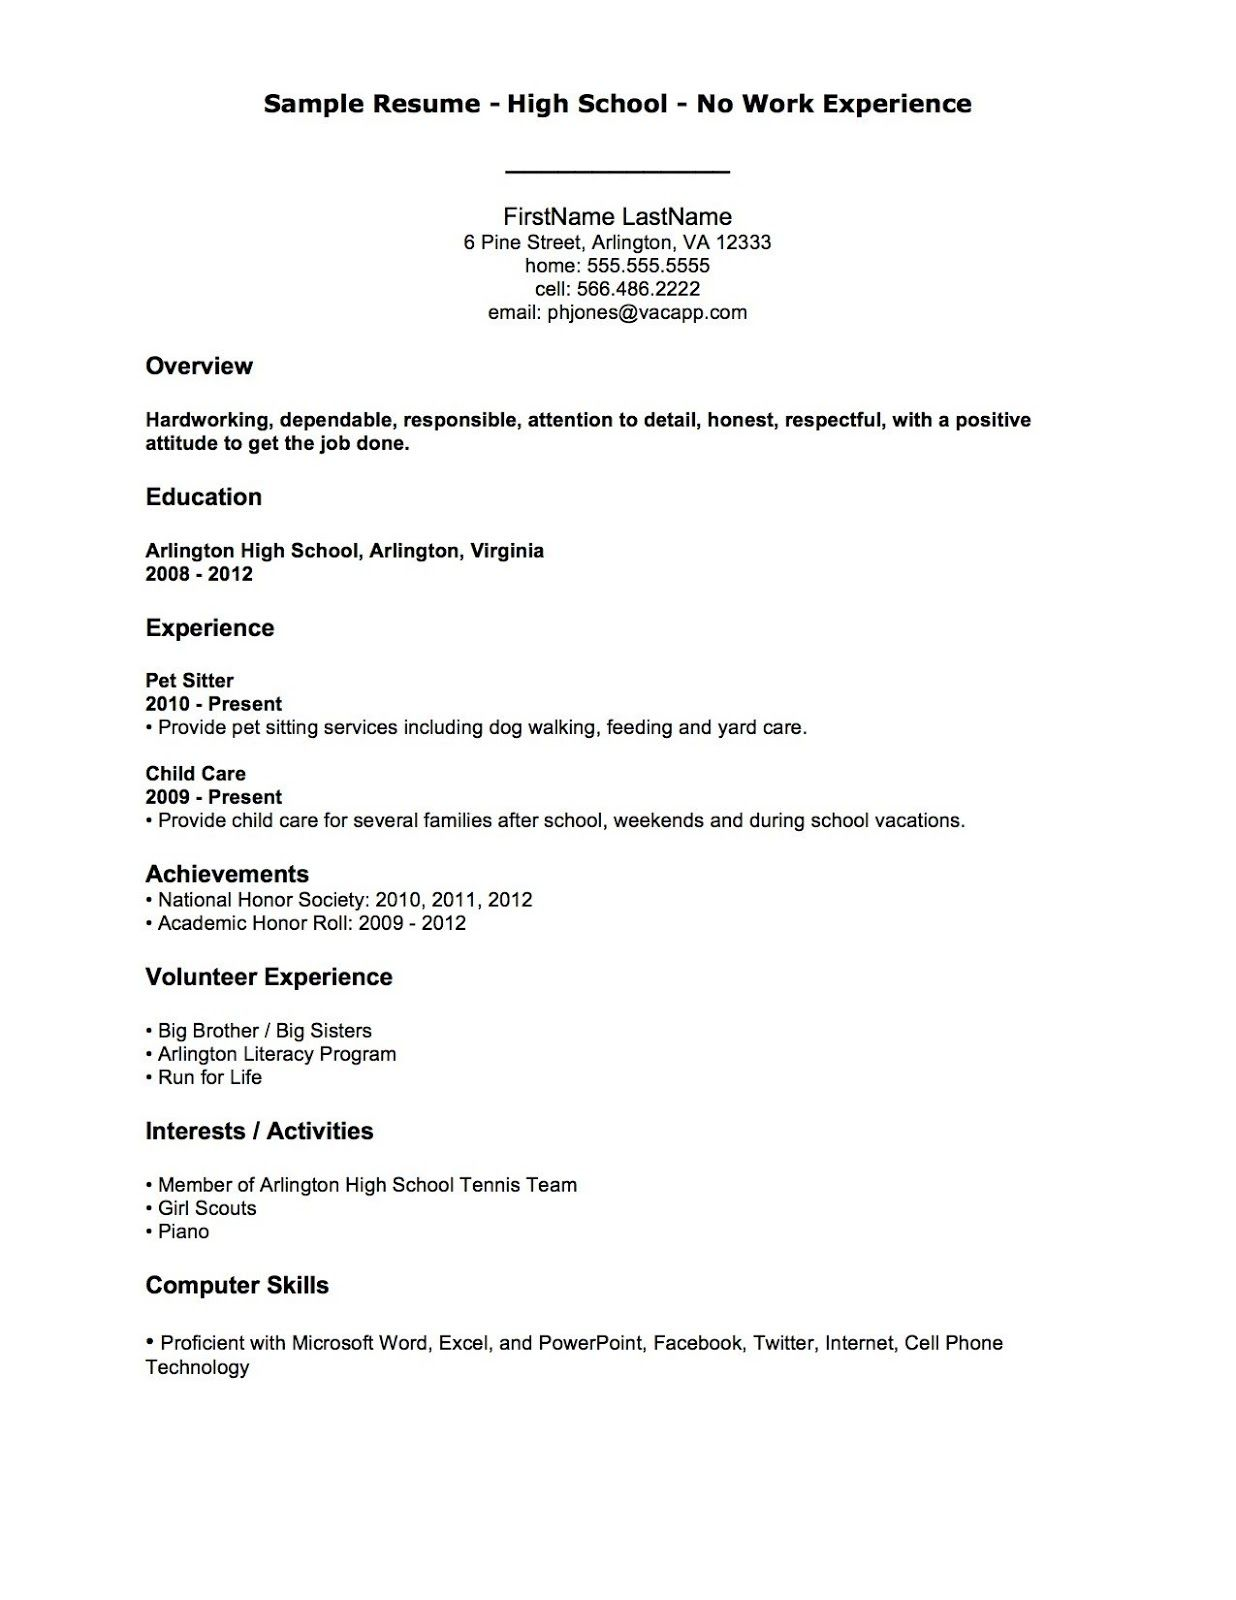 High Quality CNC Machine Operator Resume Templates   Http://ersume.com/cnc   Machine Operator Resume